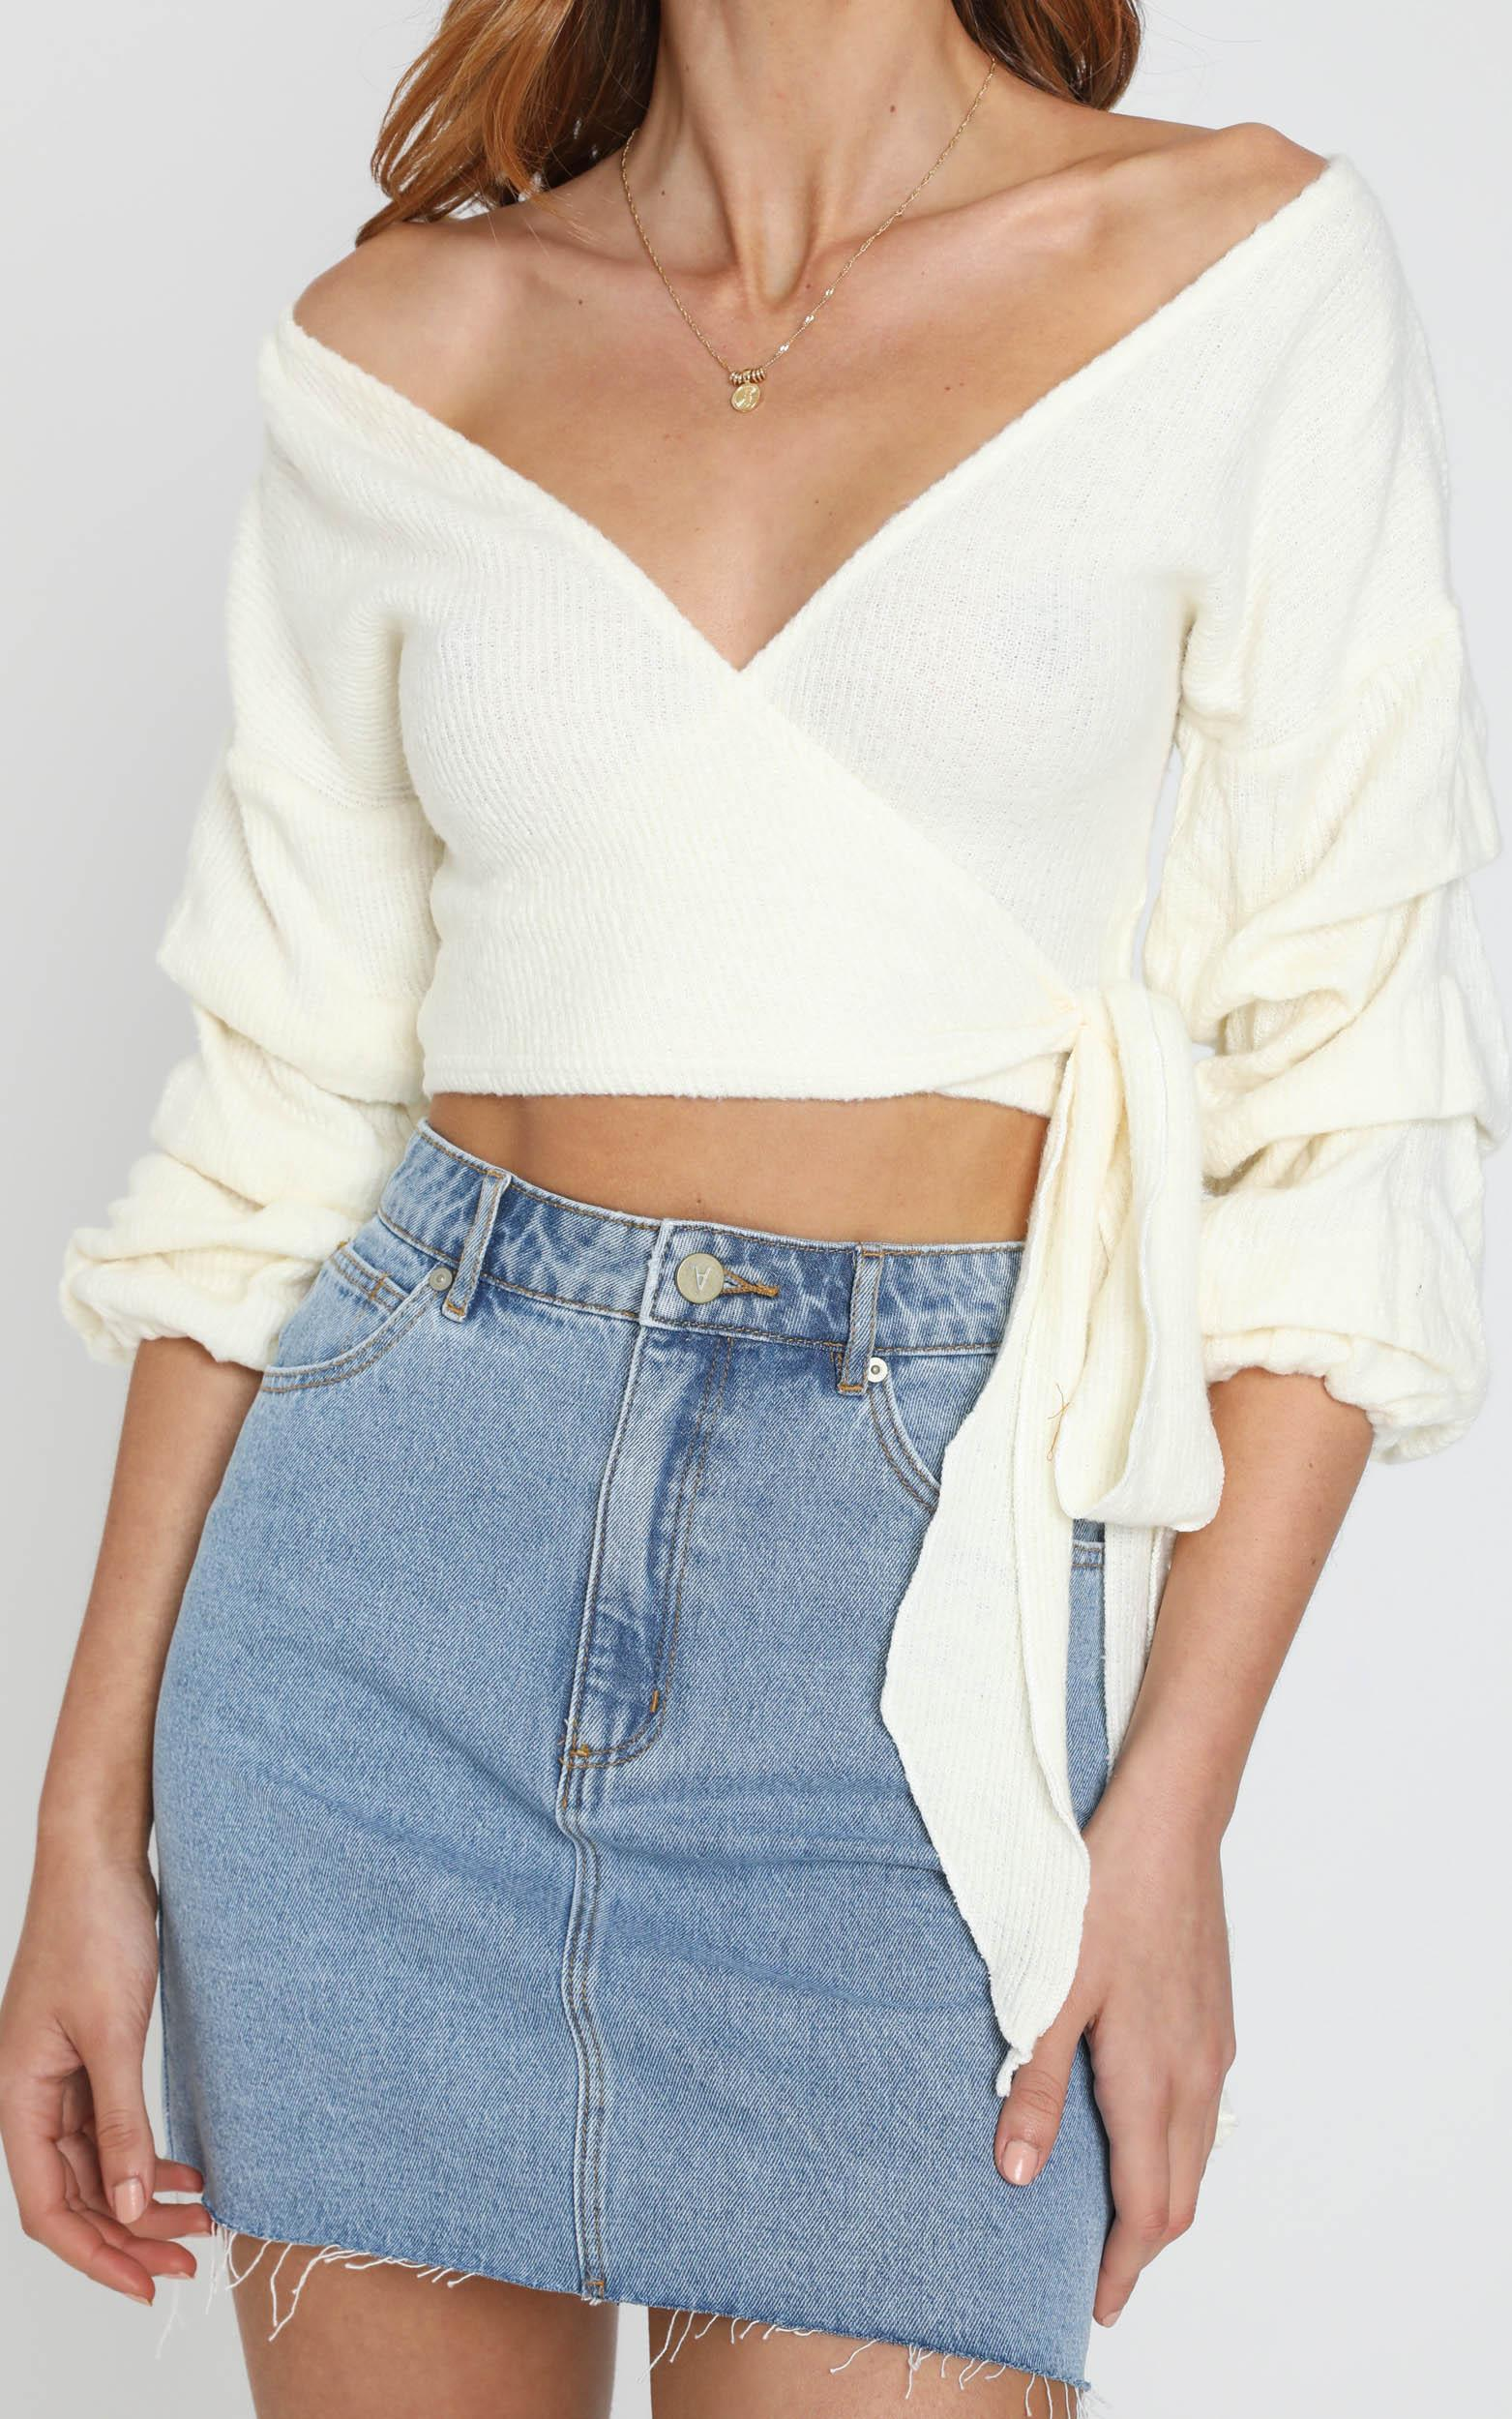 Good Decisions knit top in White - 6 (XS), White, hi-res image number null